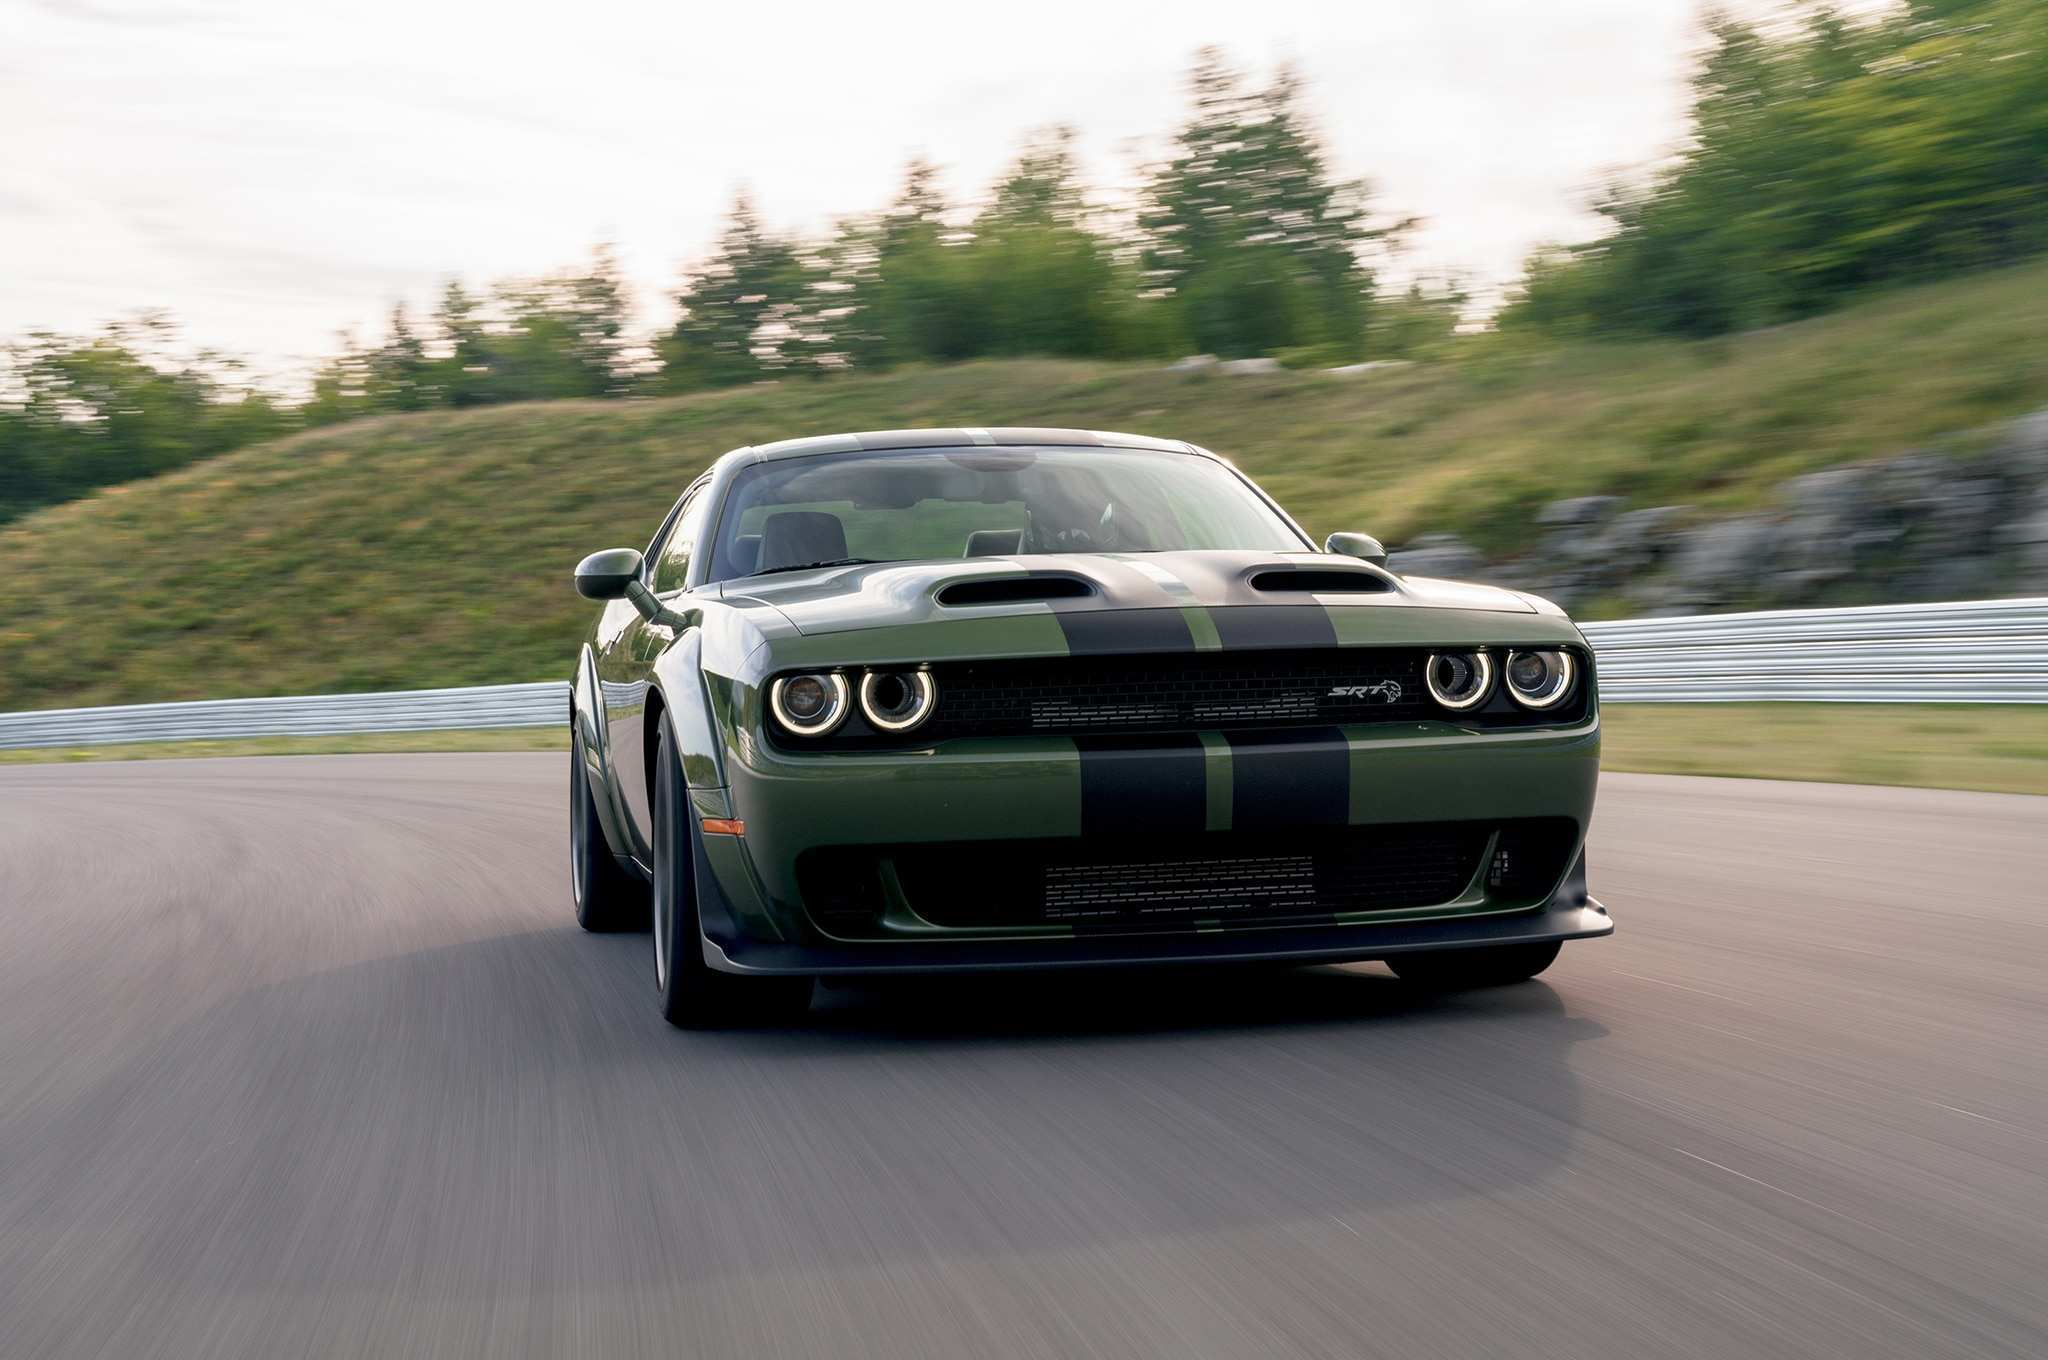 22 The Best 2019 Challenger Srt8 Hellcat Engine